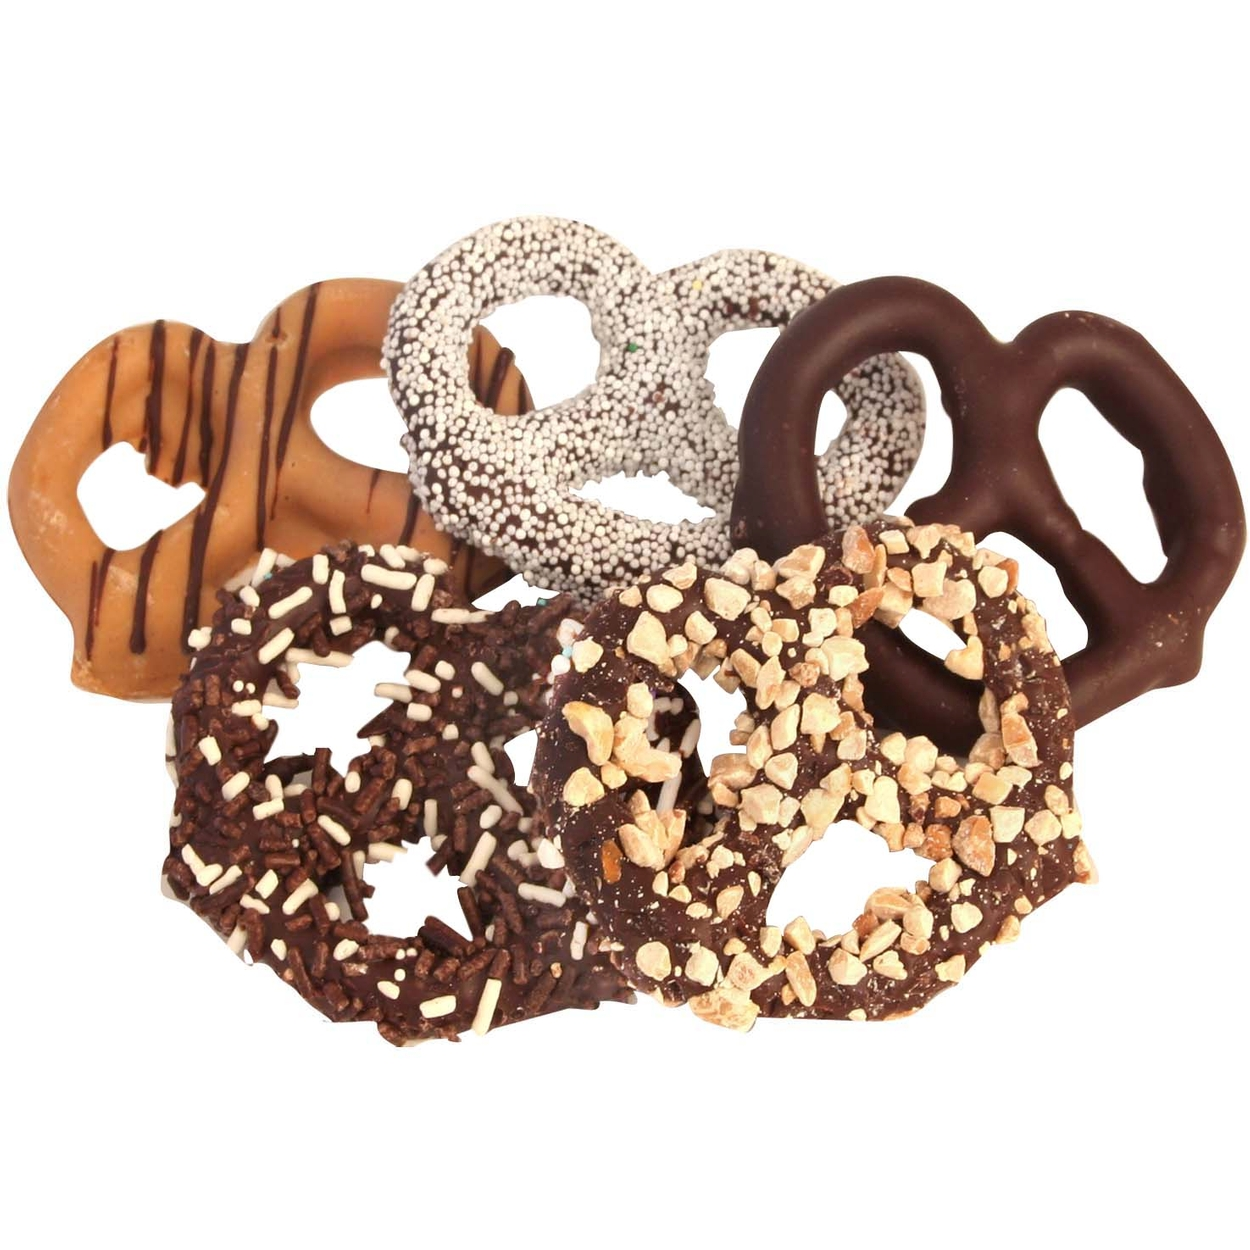 Assorted Chocolate Covered Pretzels - 10CT Box • Chocolate ...